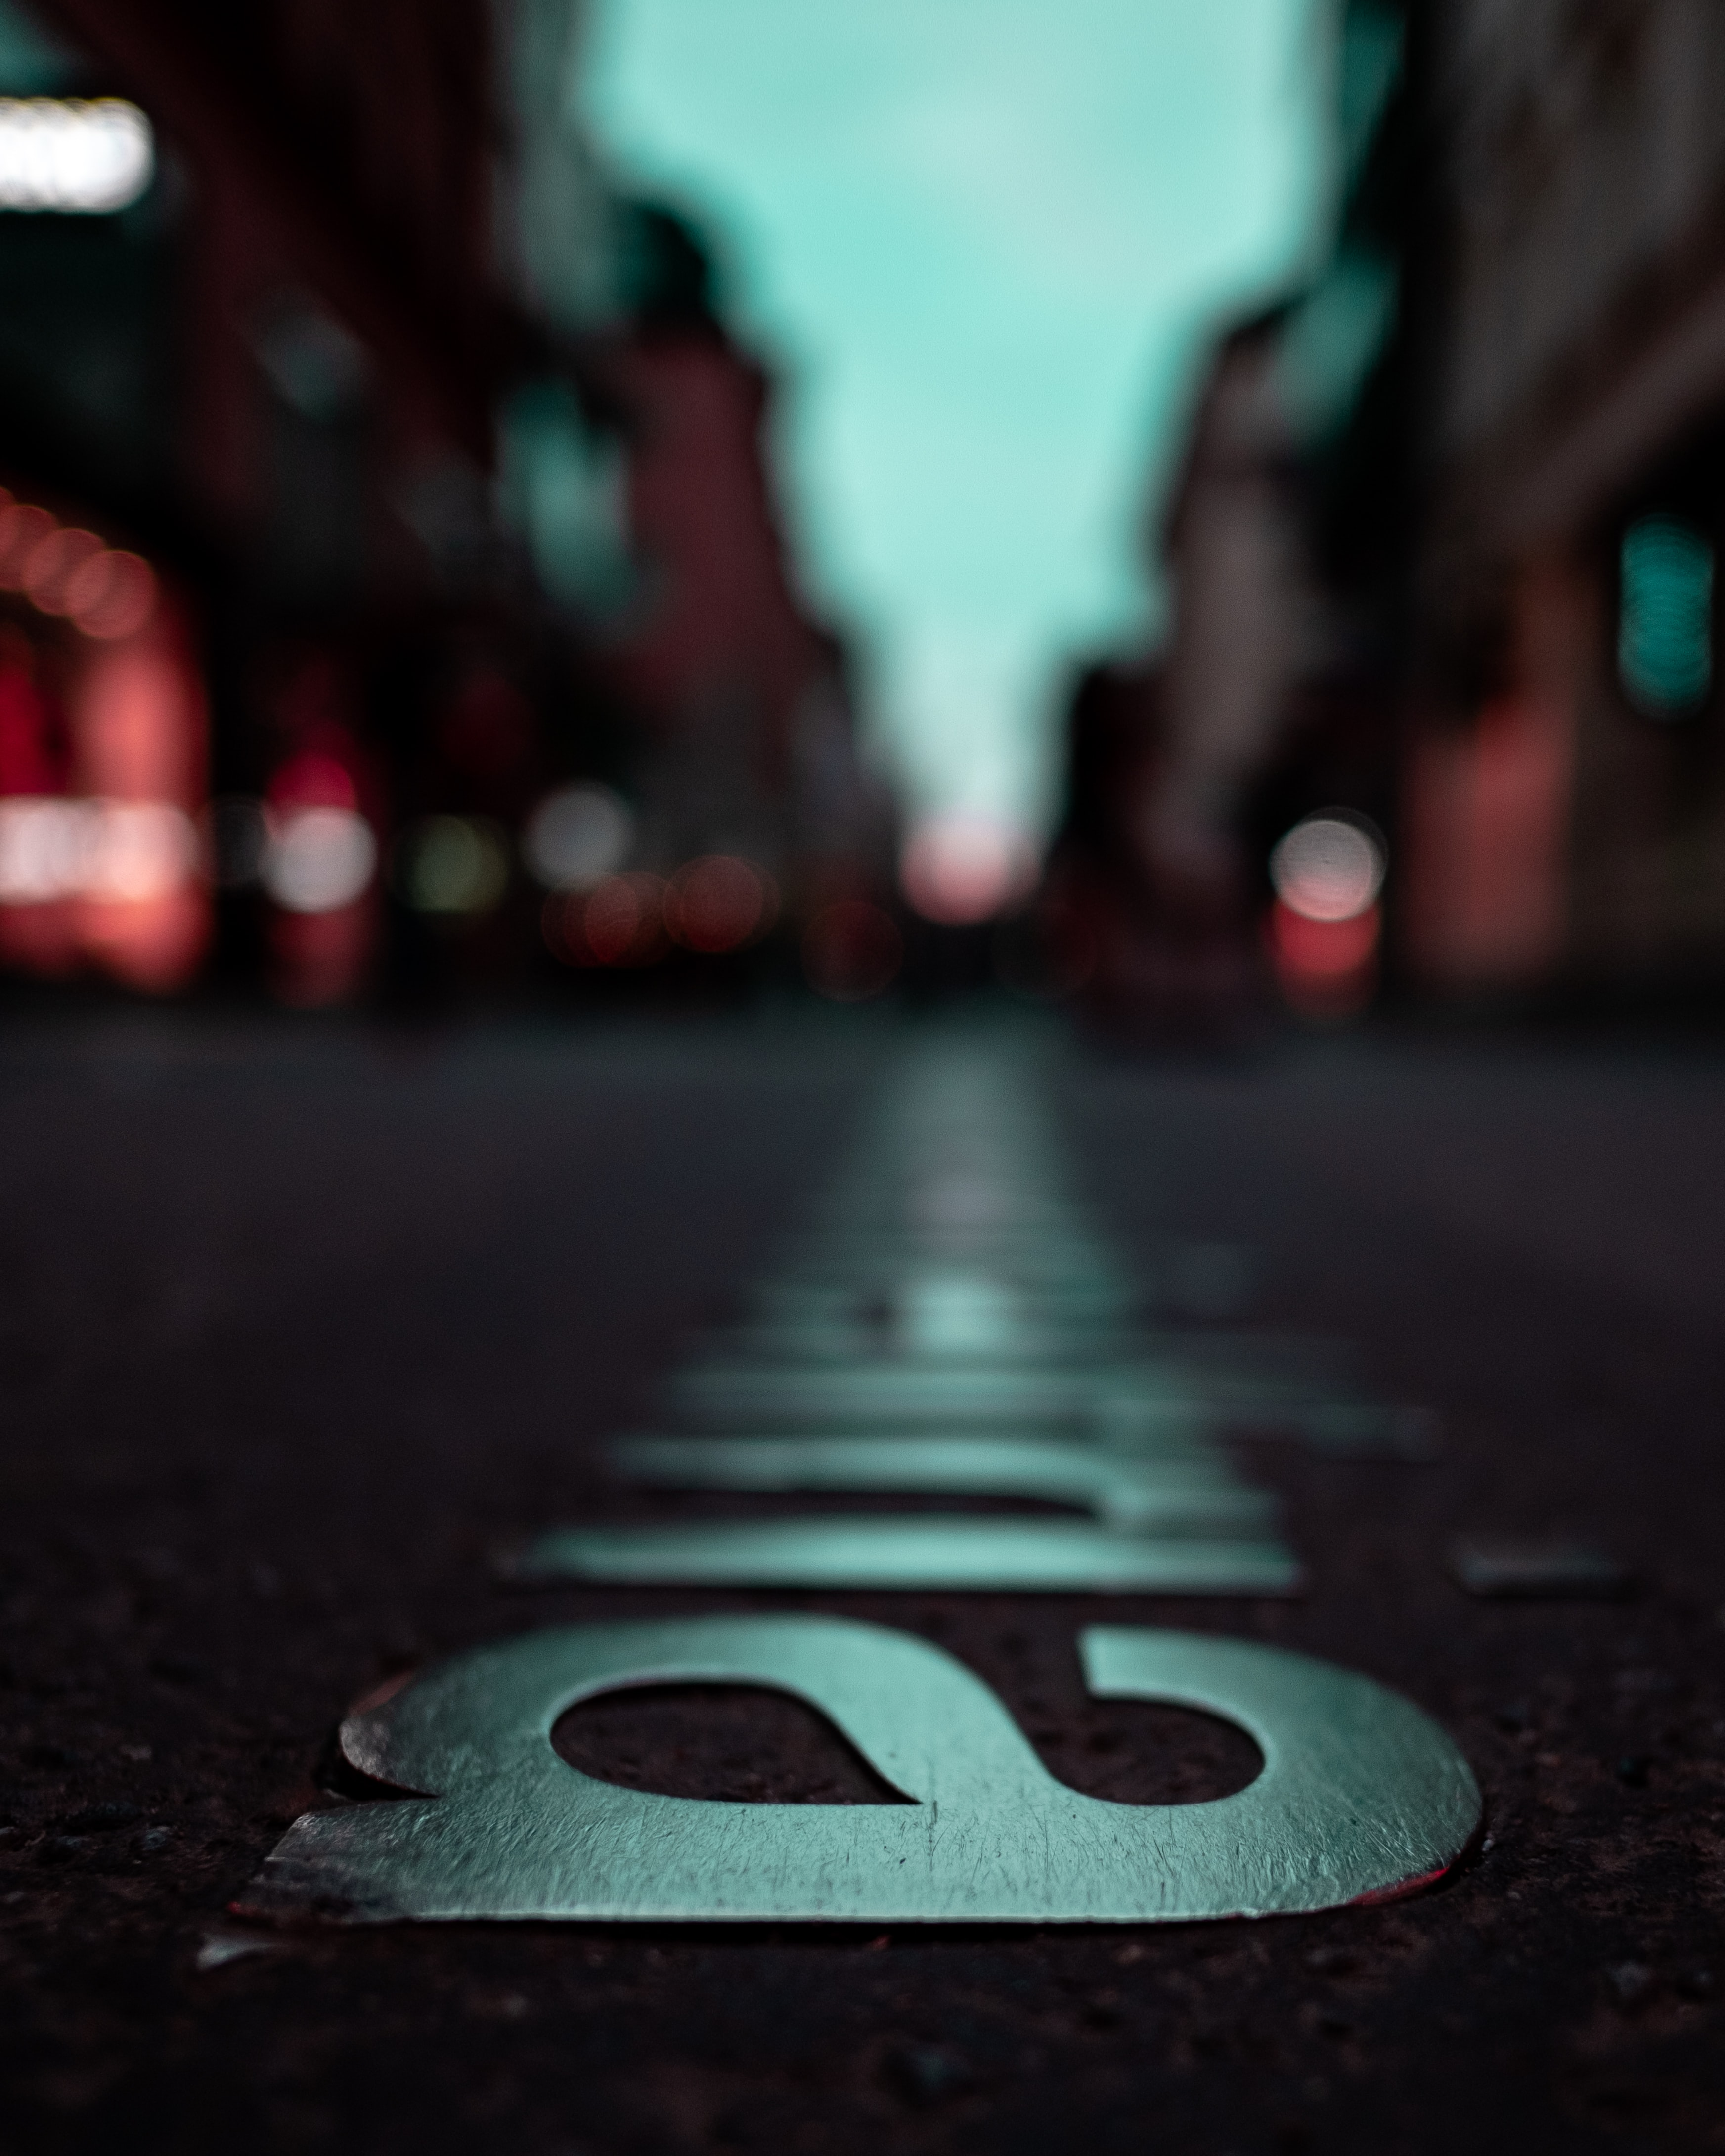 selective focus photography of silver-colored emblem on concrete pavement